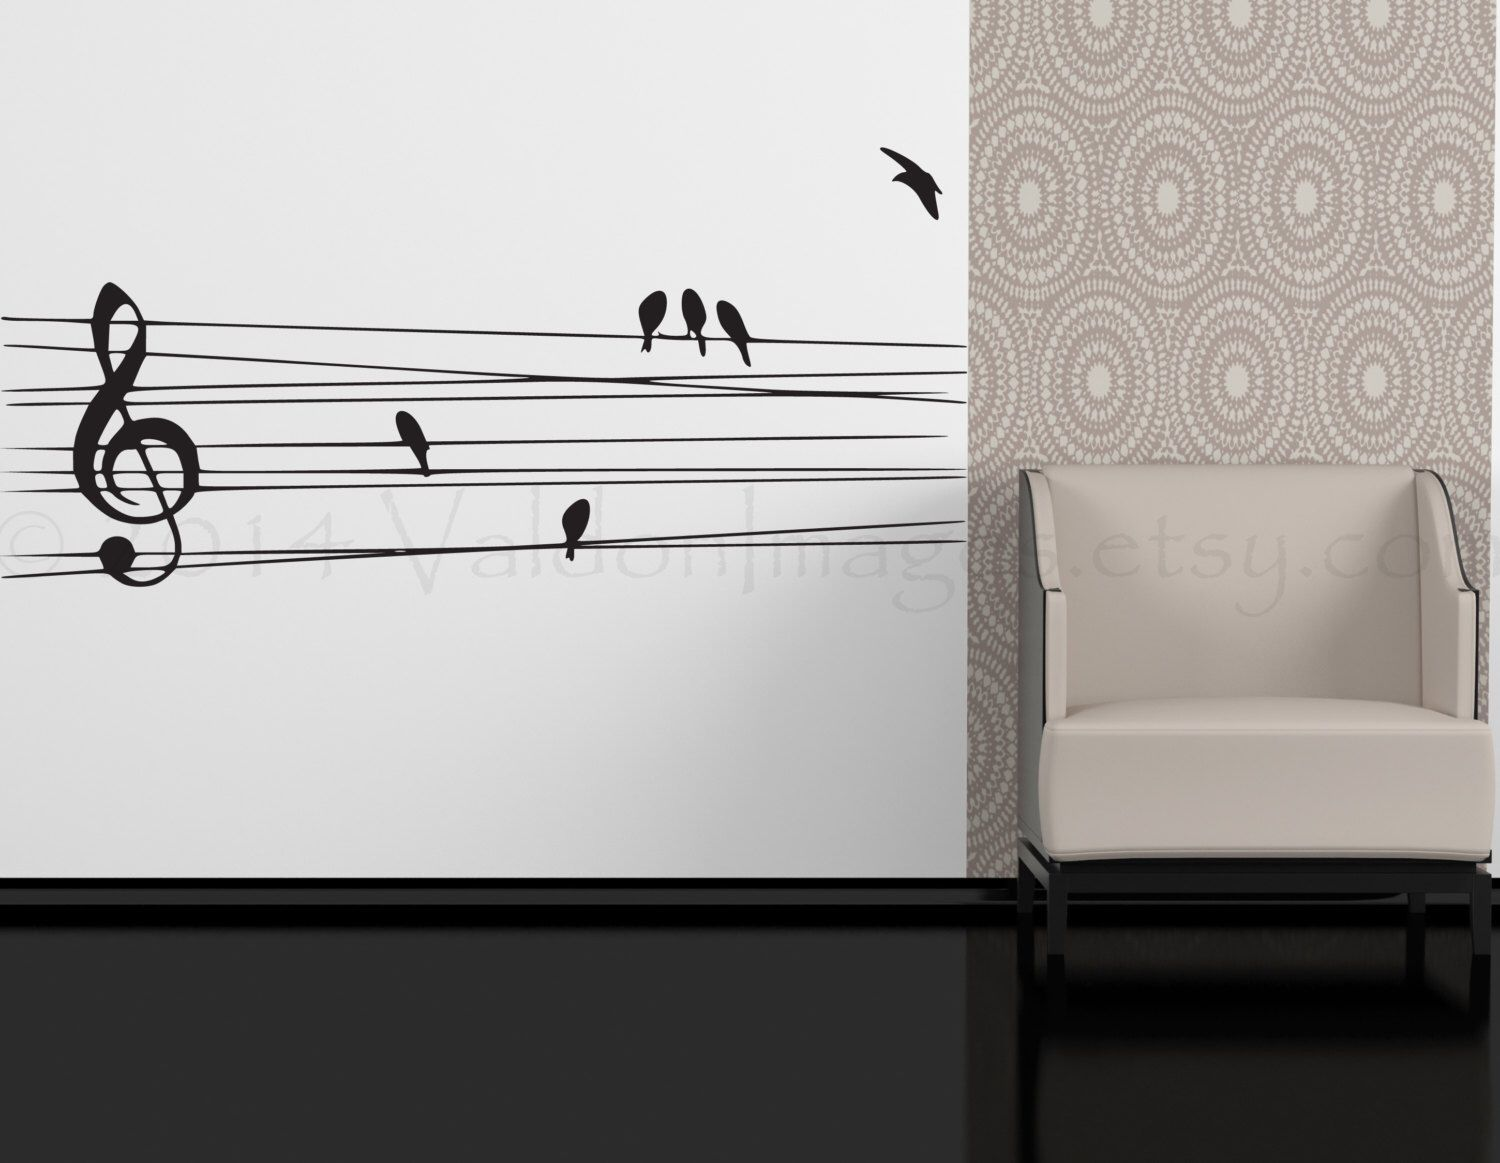 Deer head wall decal option a modern wall decals by dana decals - Birds On A Wire Wall Decal Music Wall Decal Bedroom Wall Decal Dorm Room Wall Decor Living Room Wall Decal Music Decal Music Sticker